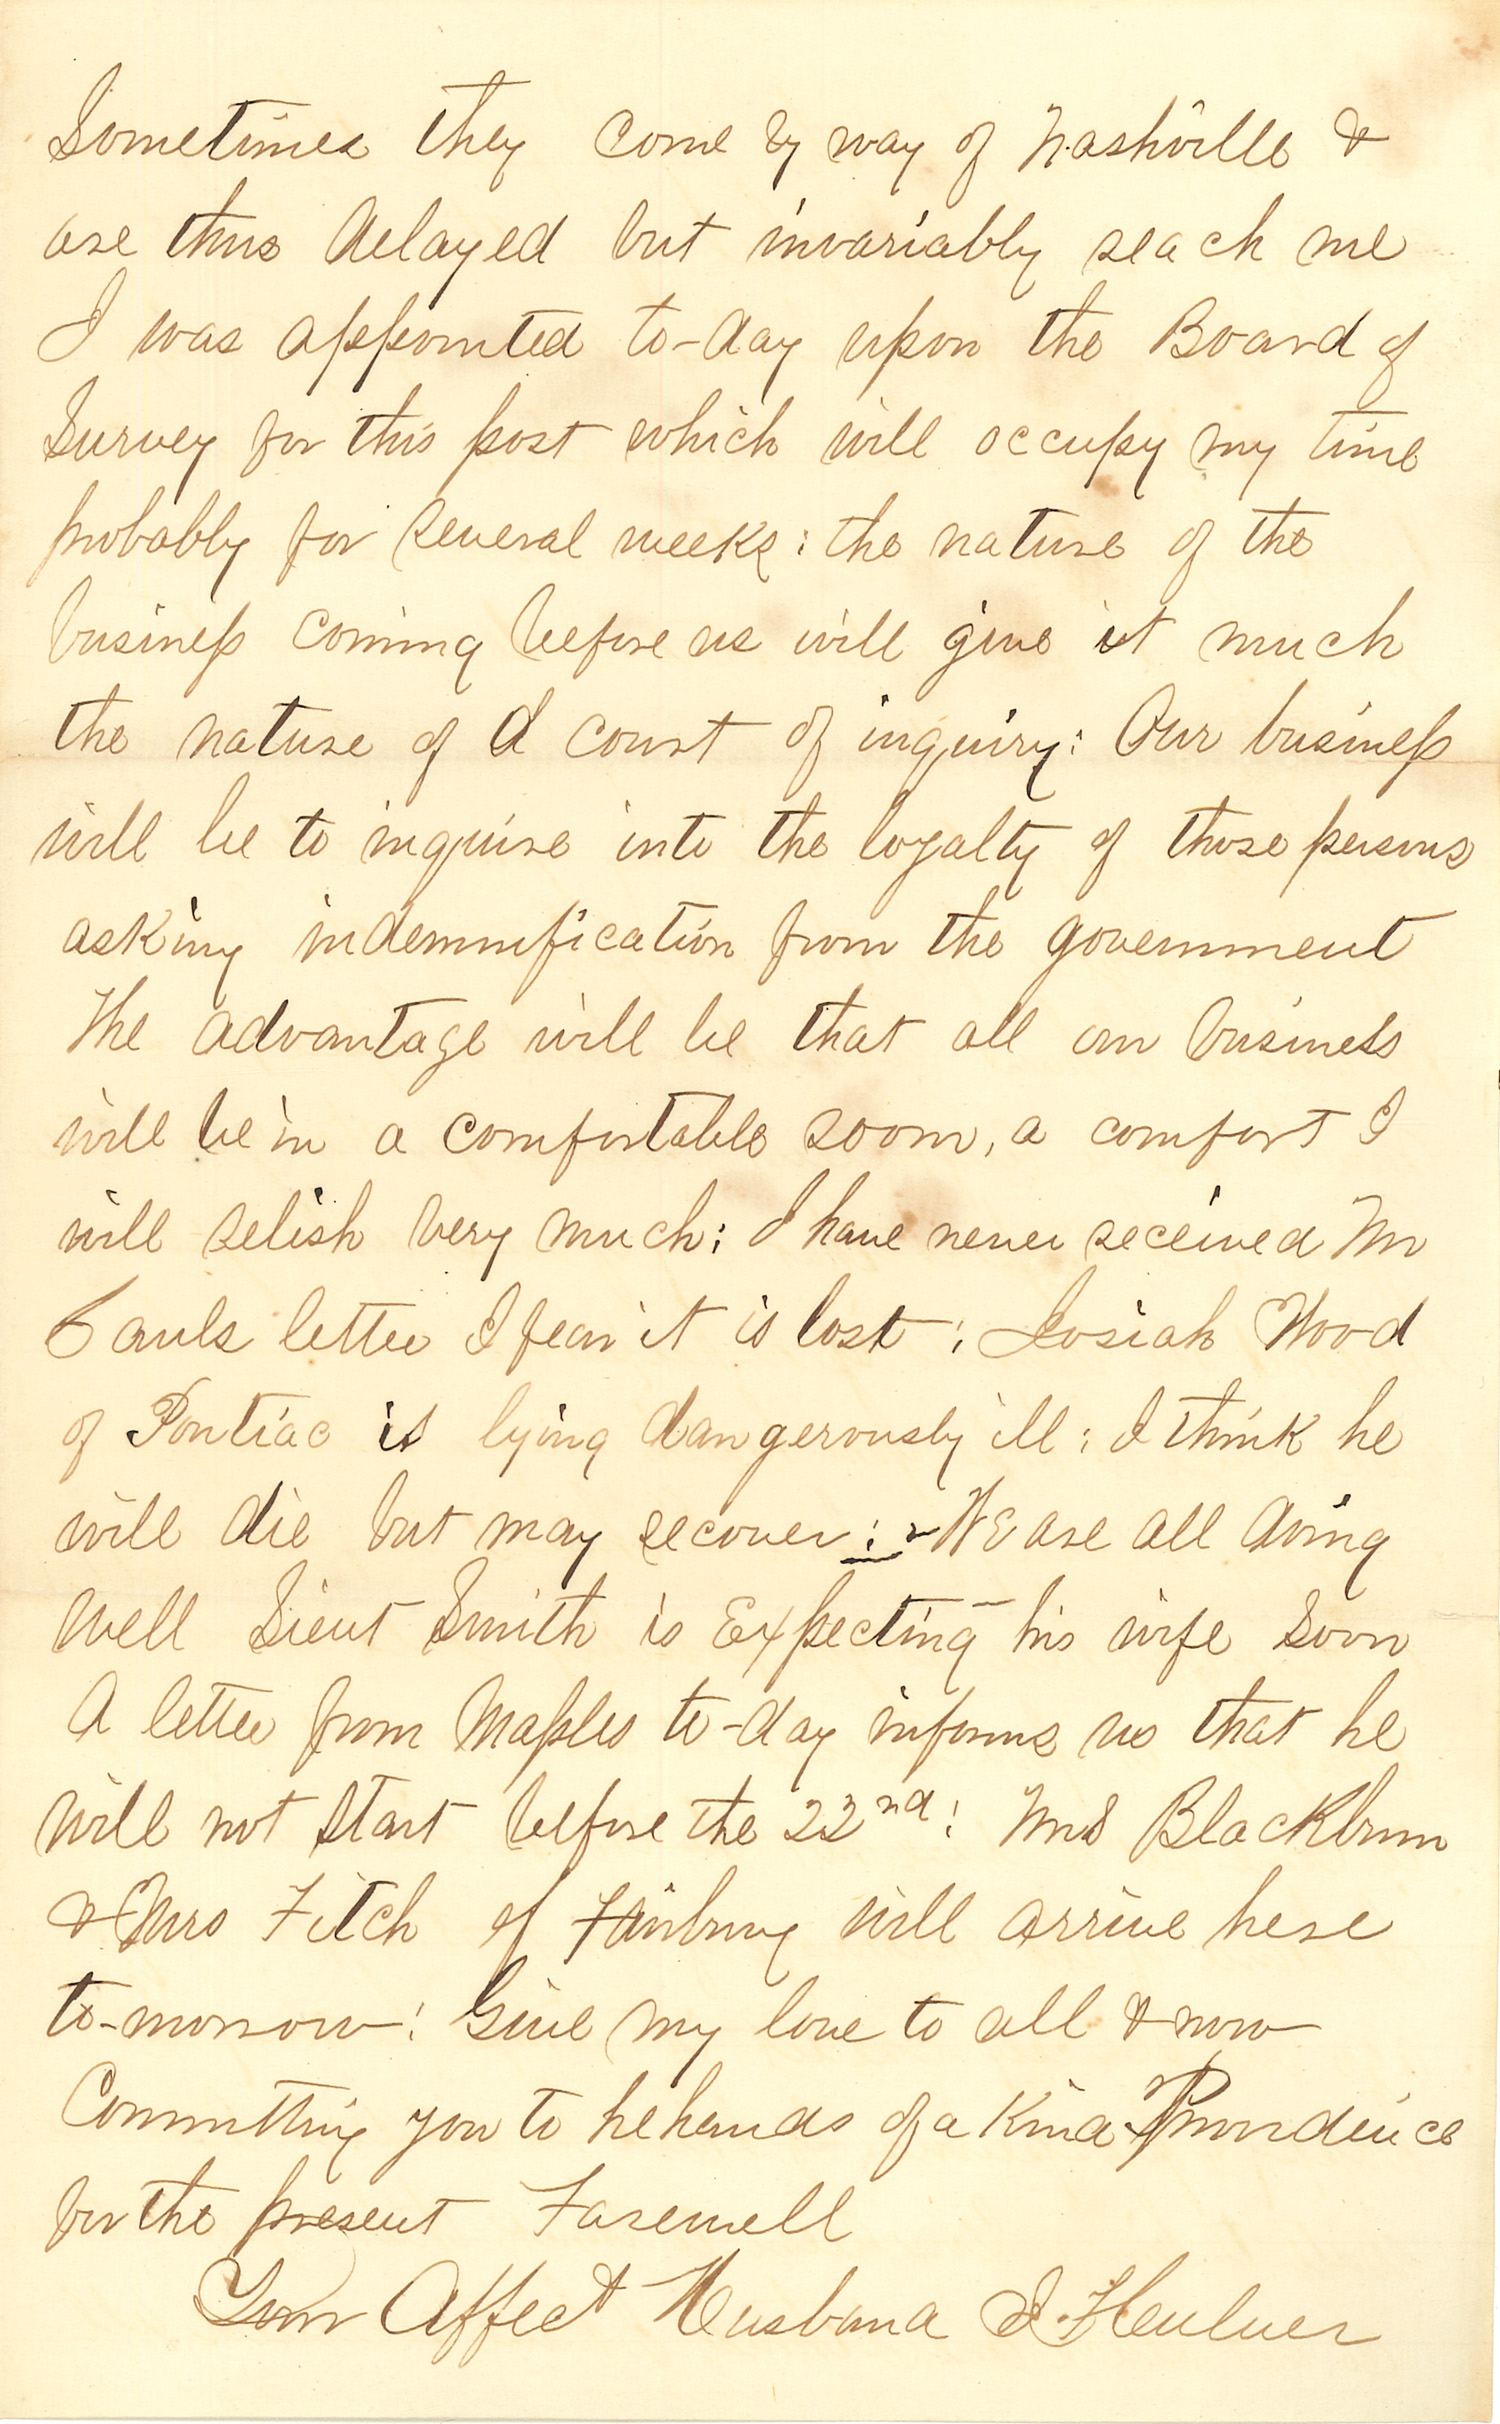 Joseph Culver Letter, December 18, 1862, Page 3